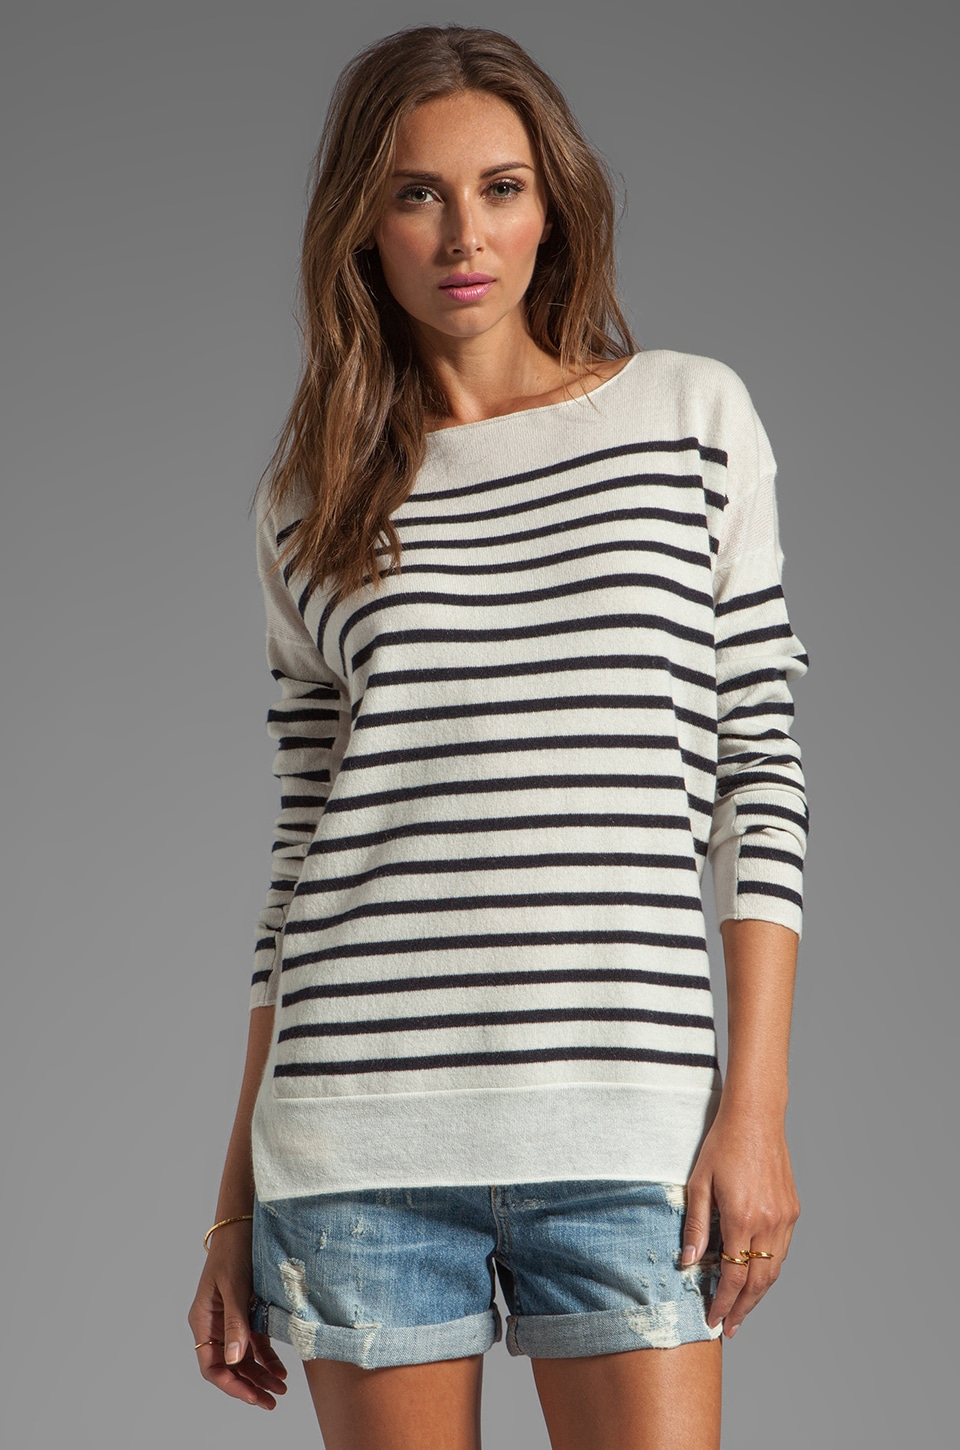 Vince Cashmere Linked Striped Boatneck in Winter White/Coastal